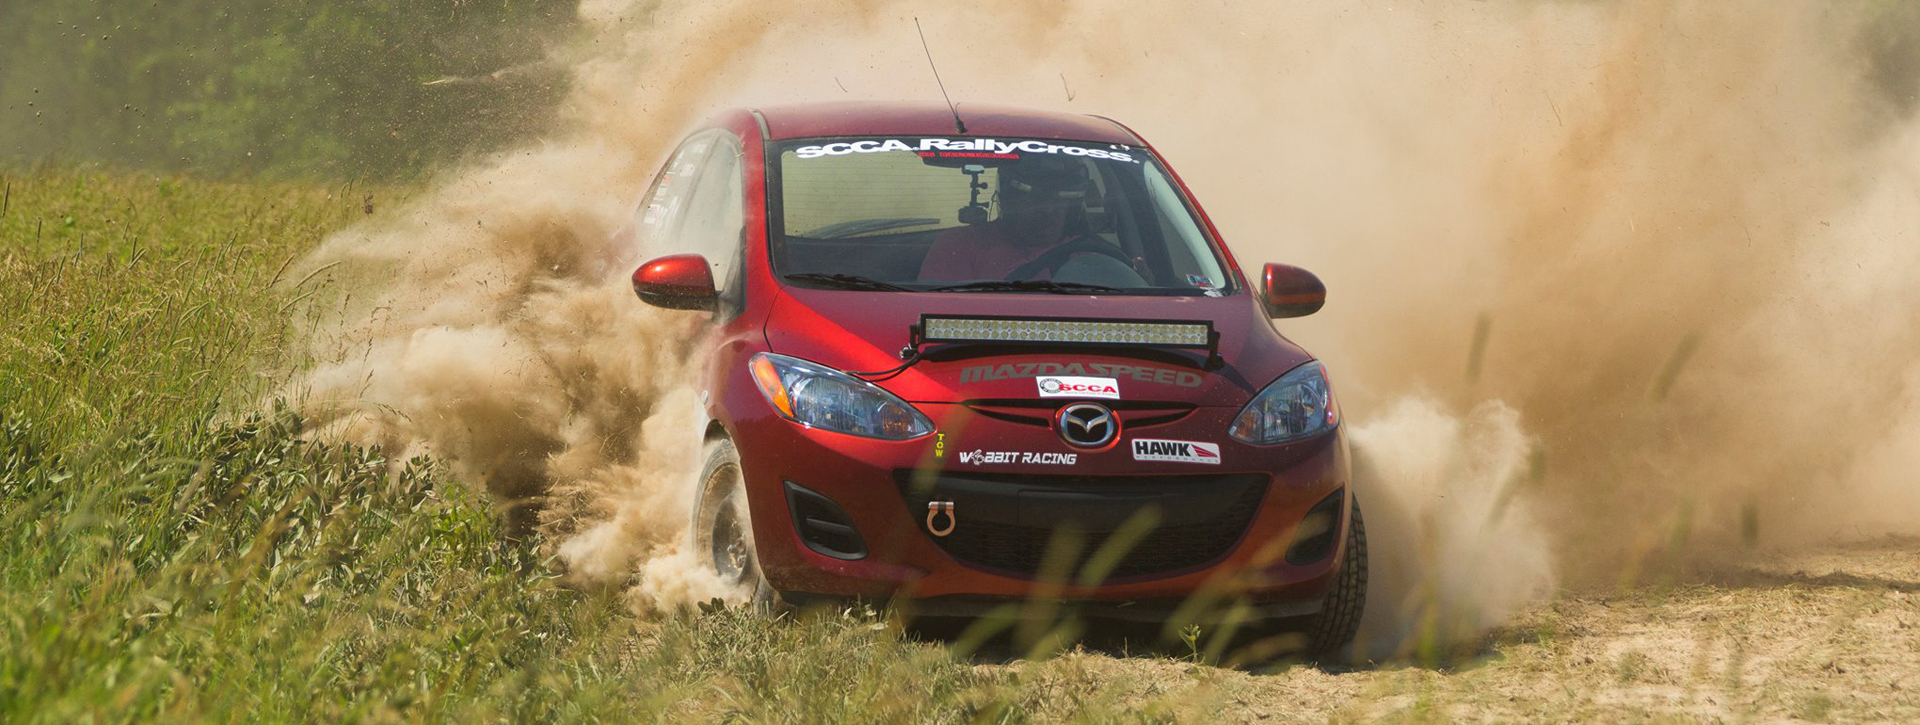 <p>Name: Stephen Hyatt From: Chambersburg, PA Runs: Rally Cross and Road Racing Drives: 2014 Mazda 2 in the SF class Member Since: 1972 Stephen Hayatt has been a long-time member of the SCCA. He has run every kind of race we have put on. These days he can be found running [&hellip;]</p>